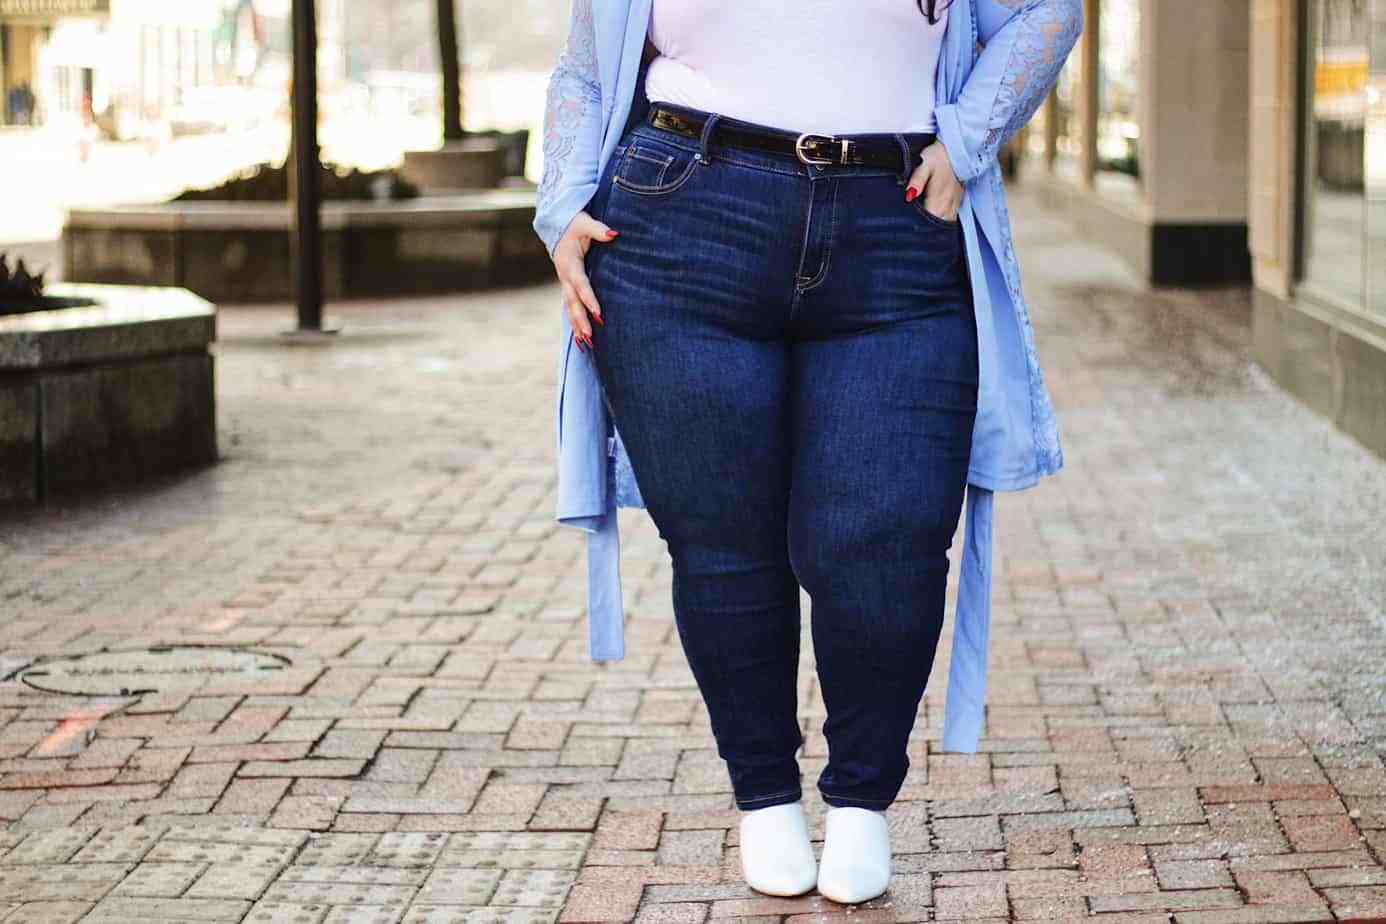 Alysse Dalessandro modeling Lane Bryant's  Essential High-Rise Skinny Jean